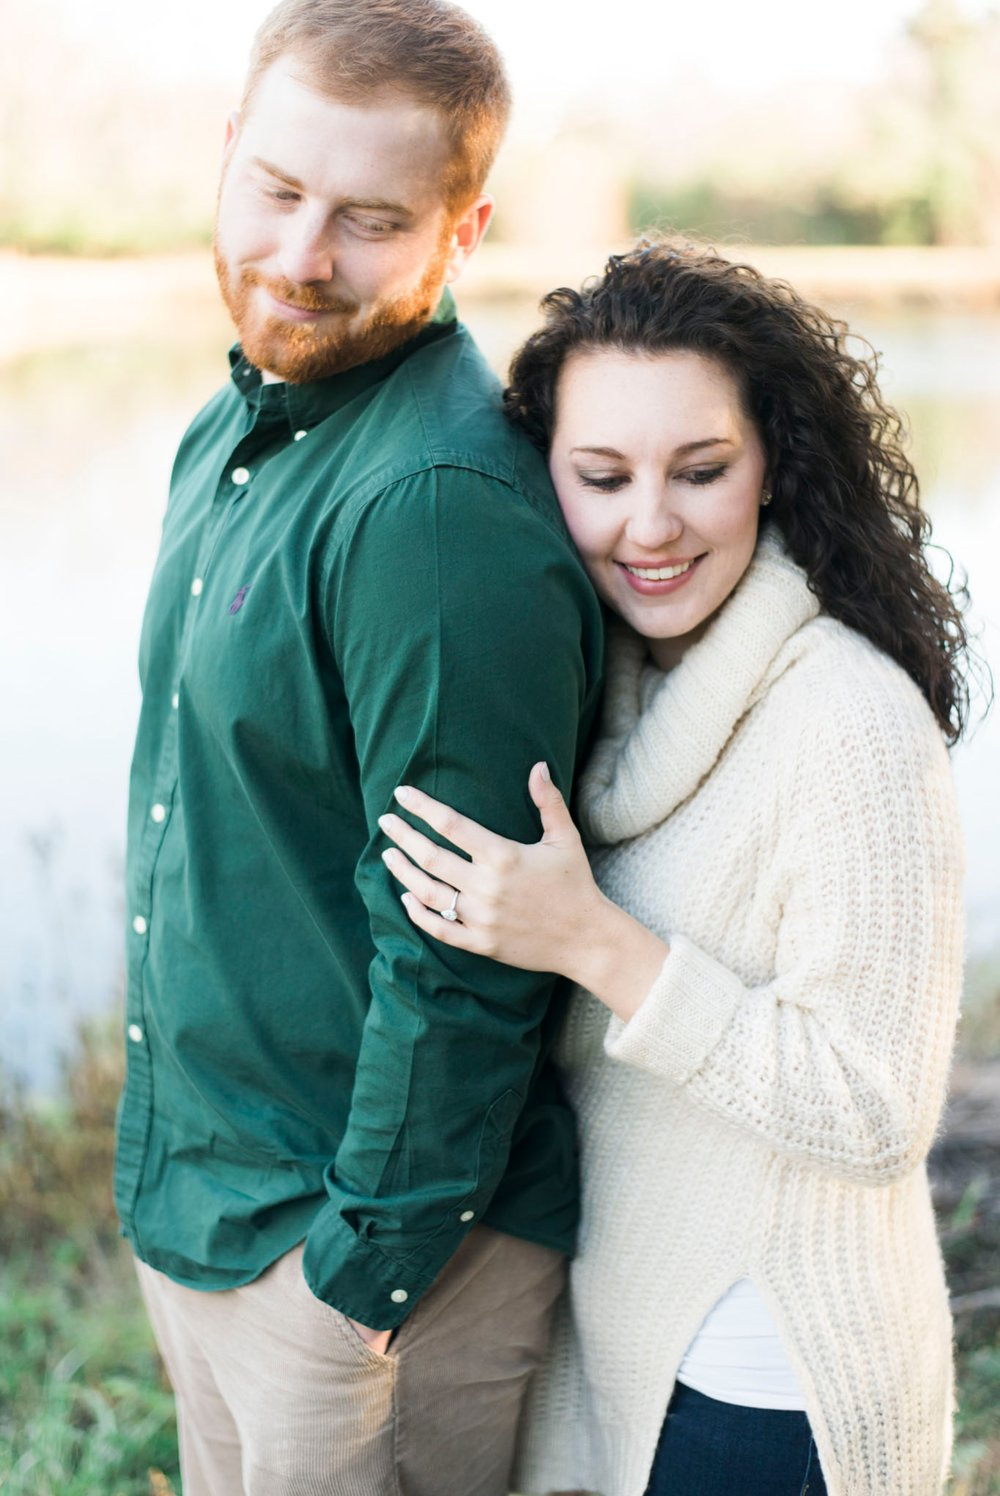 SorellaFarms_EngagementSession_VirginiaweddingPhotographer 11.jpg